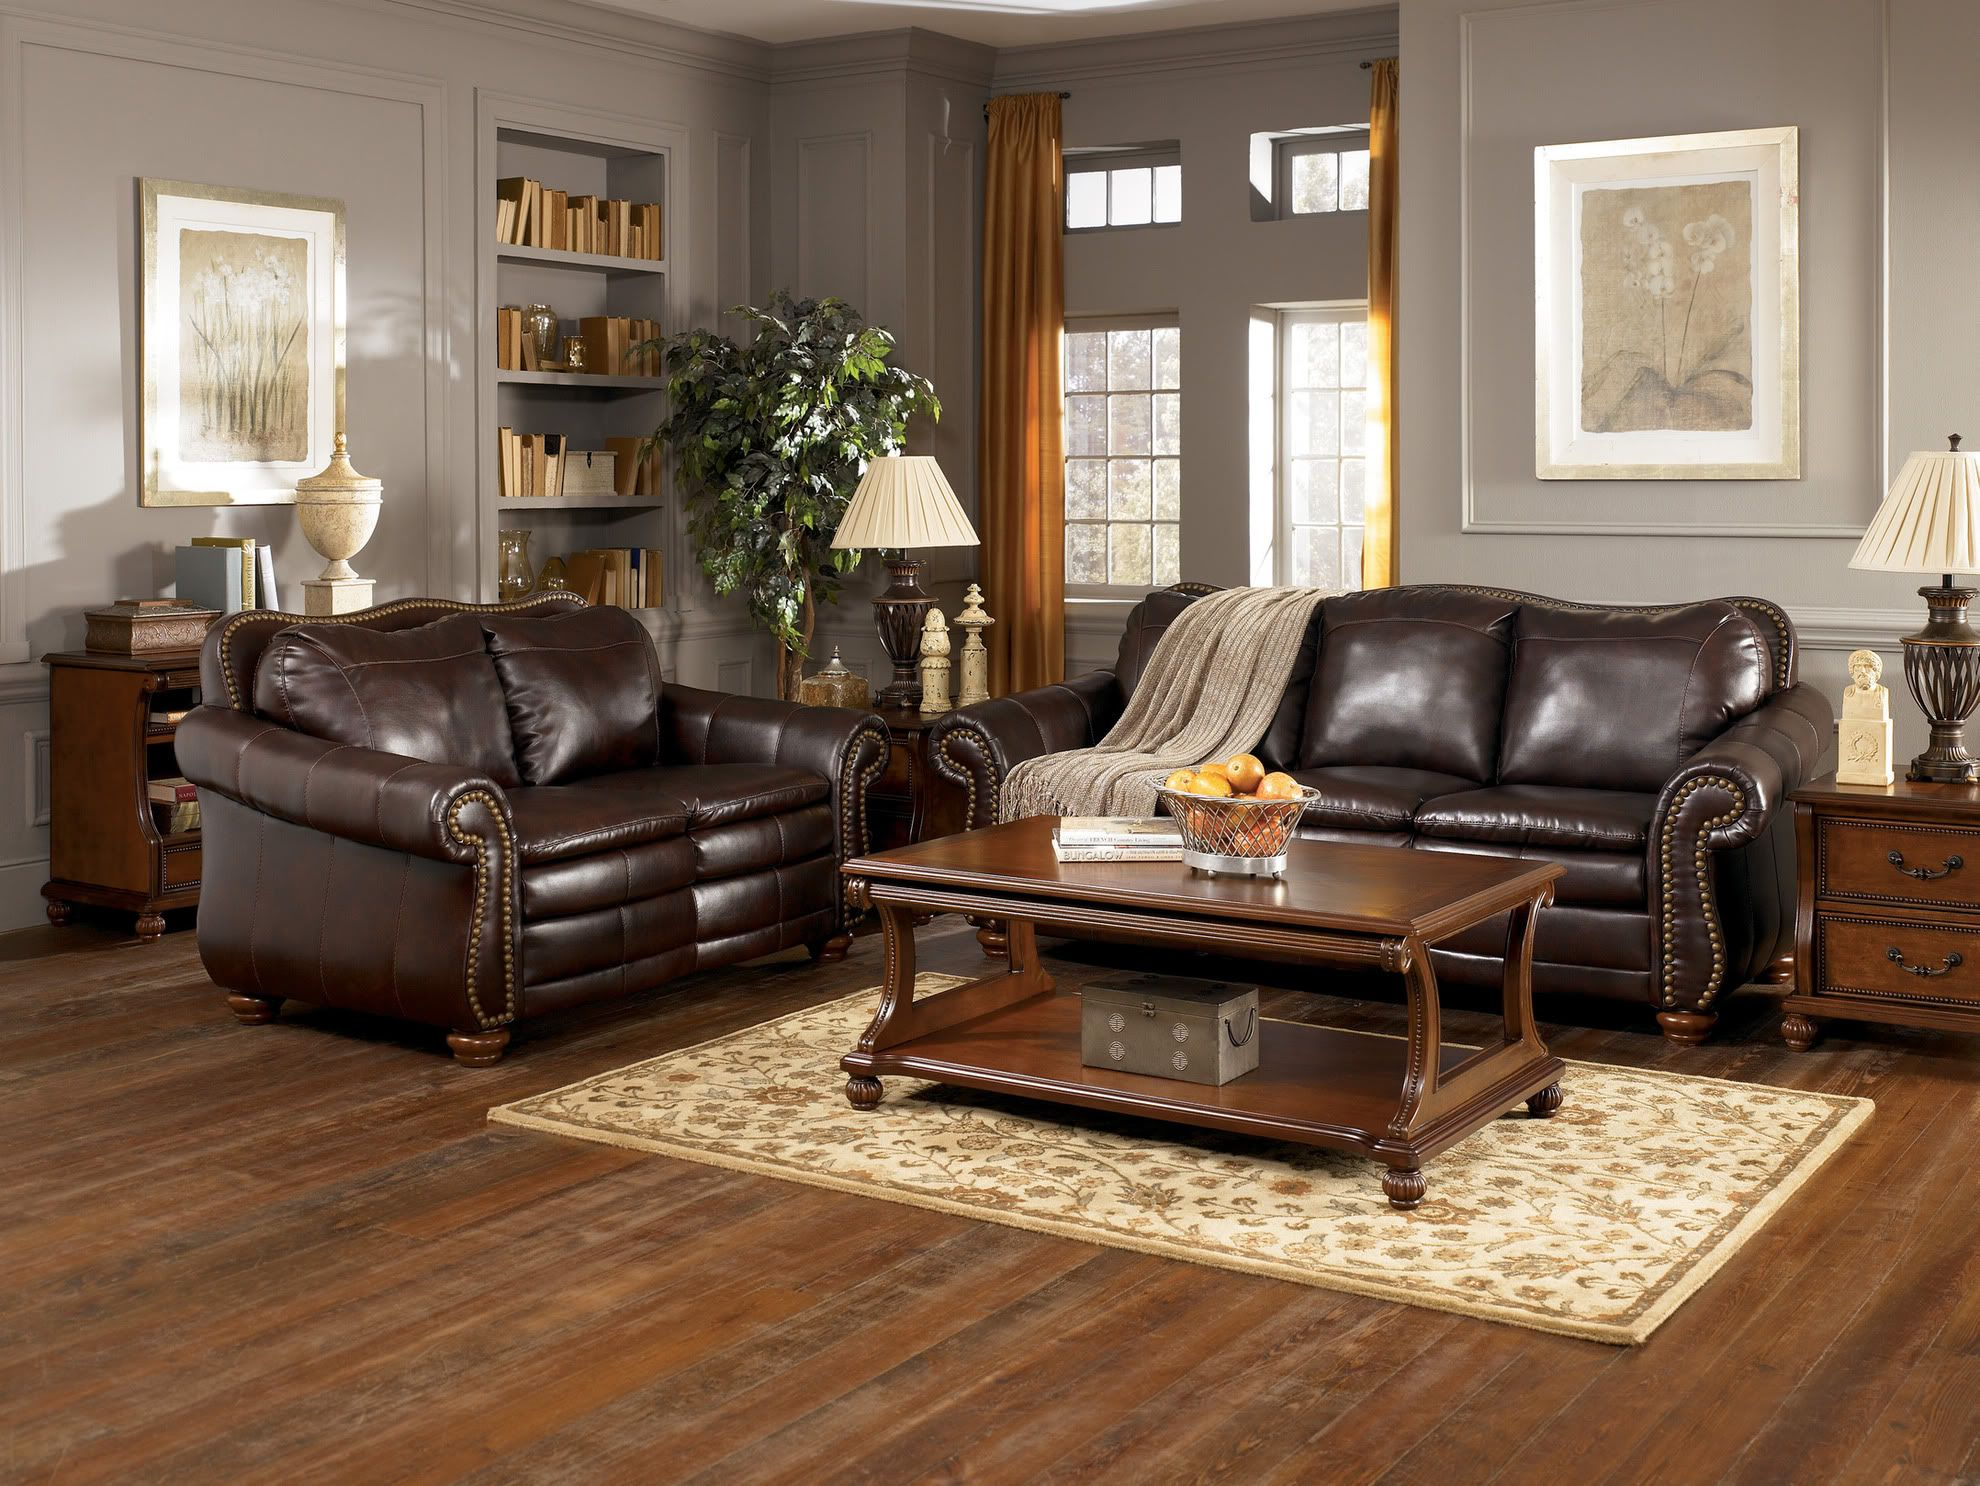 Fetching grey living room with brown furniture design - Grey and blue living room furniture ...